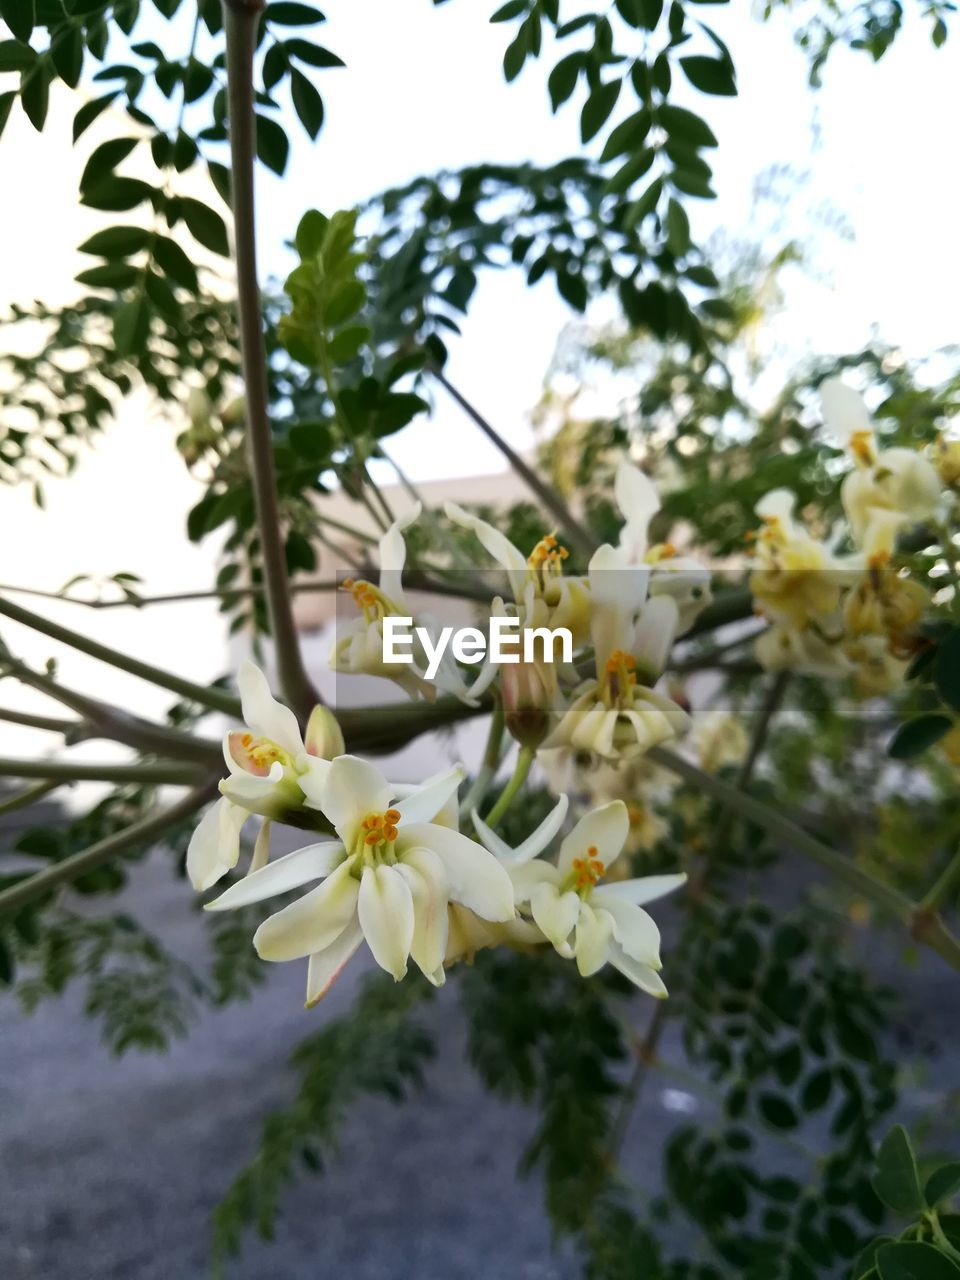 flower, growth, fragility, beauty in nature, nature, petal, freshness, white color, blossom, tree, day, no people, plant, outdoors, flower head, close-up, springtime, blooming, yellow, branch